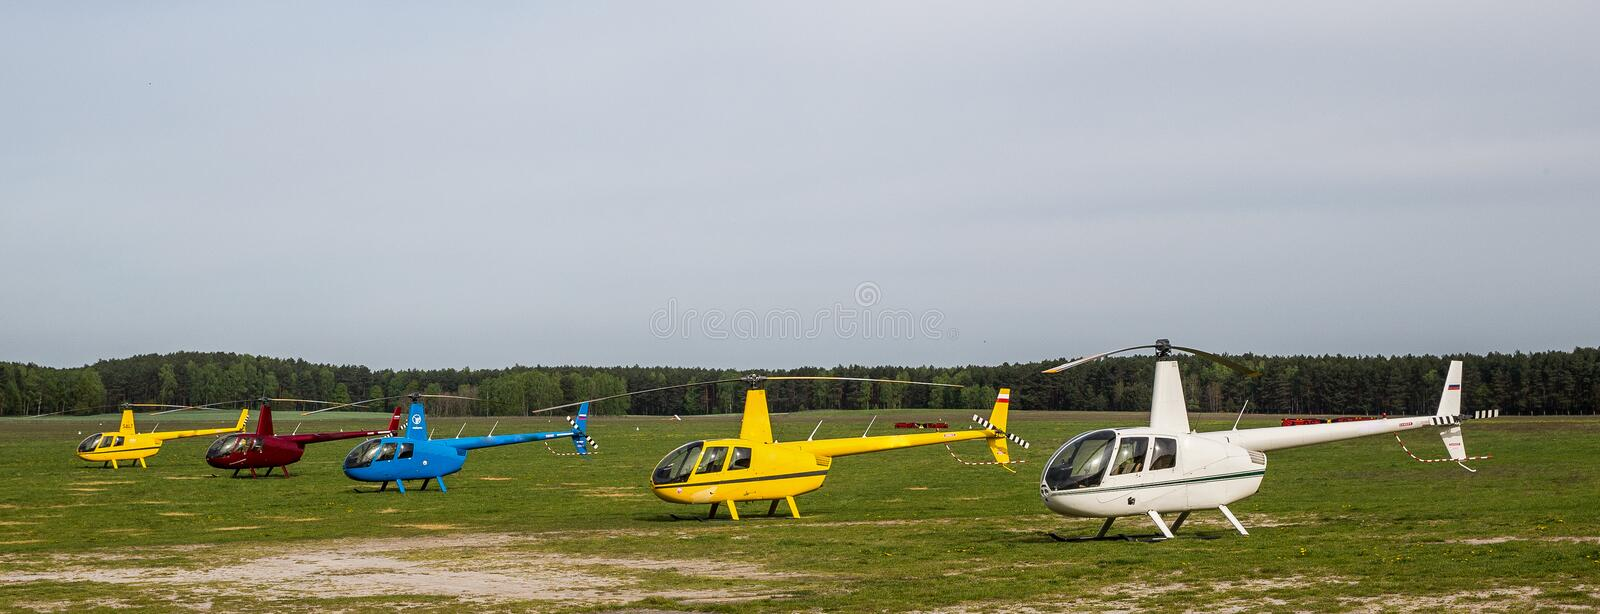 Five multicolored helicopters on the take-off field royalty free stock images